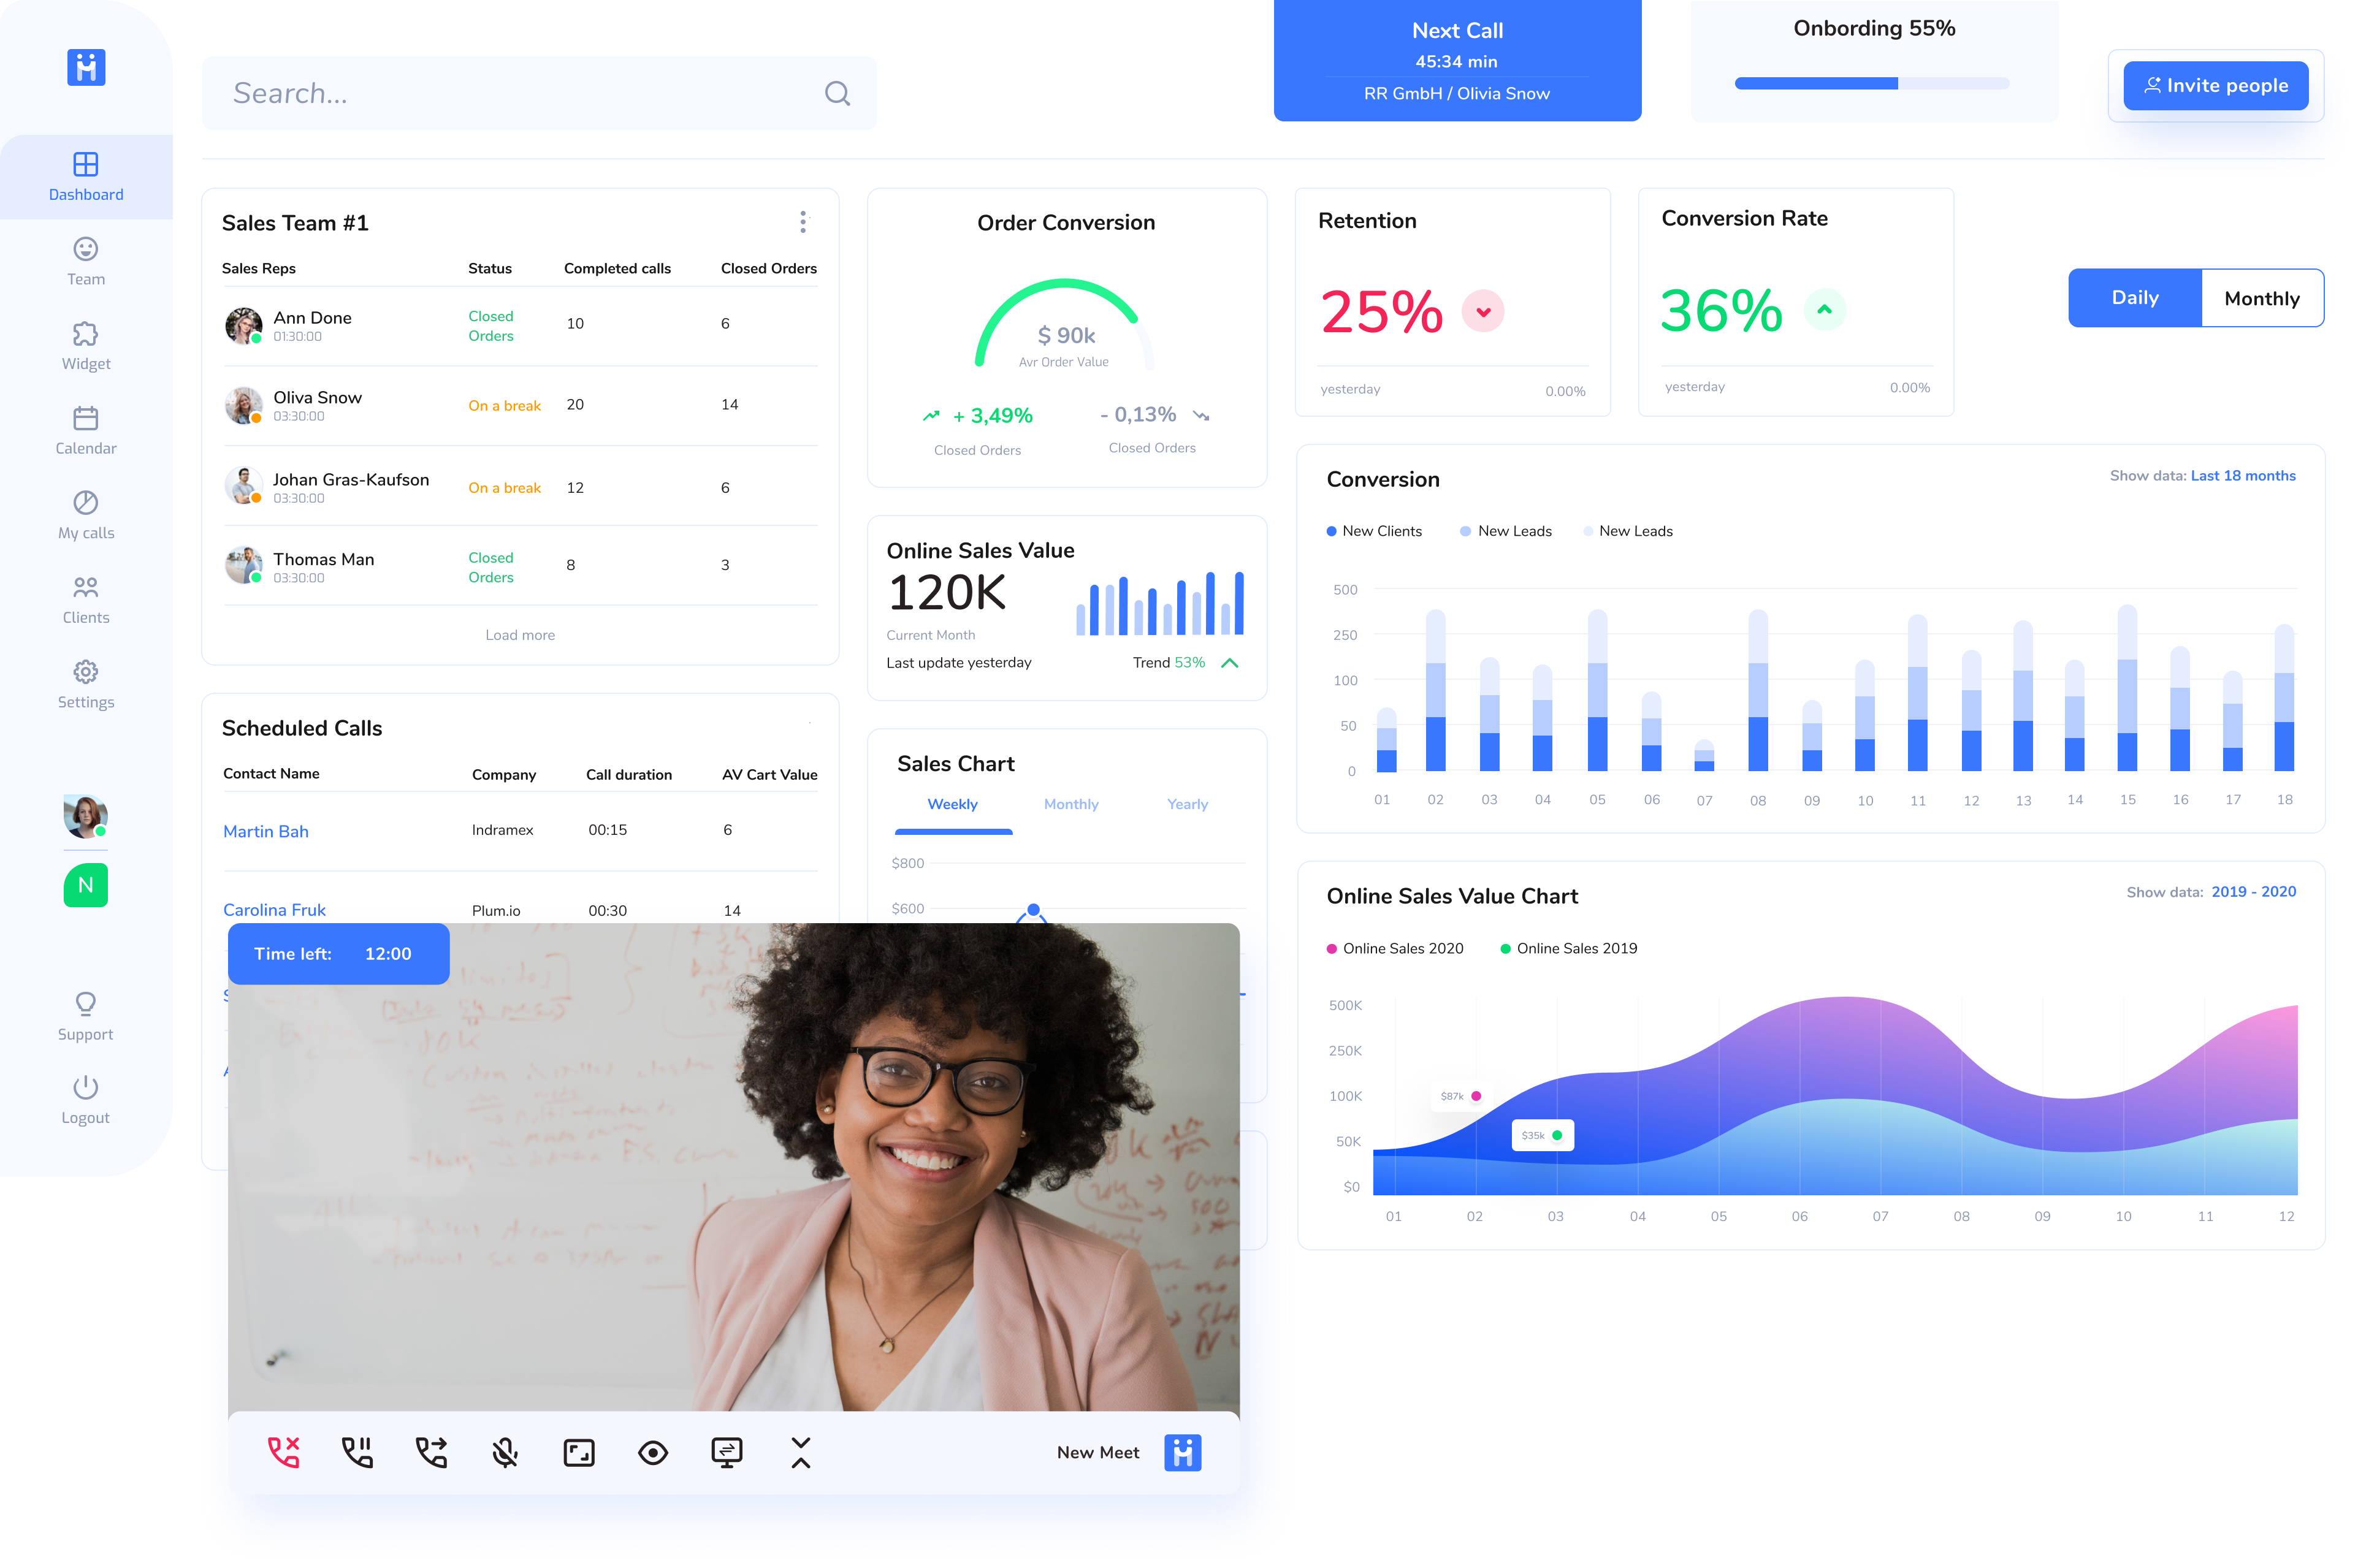 The Meetsales analytics dashboard which allows sales managers to analyze the effectiveness of the digitized sales process